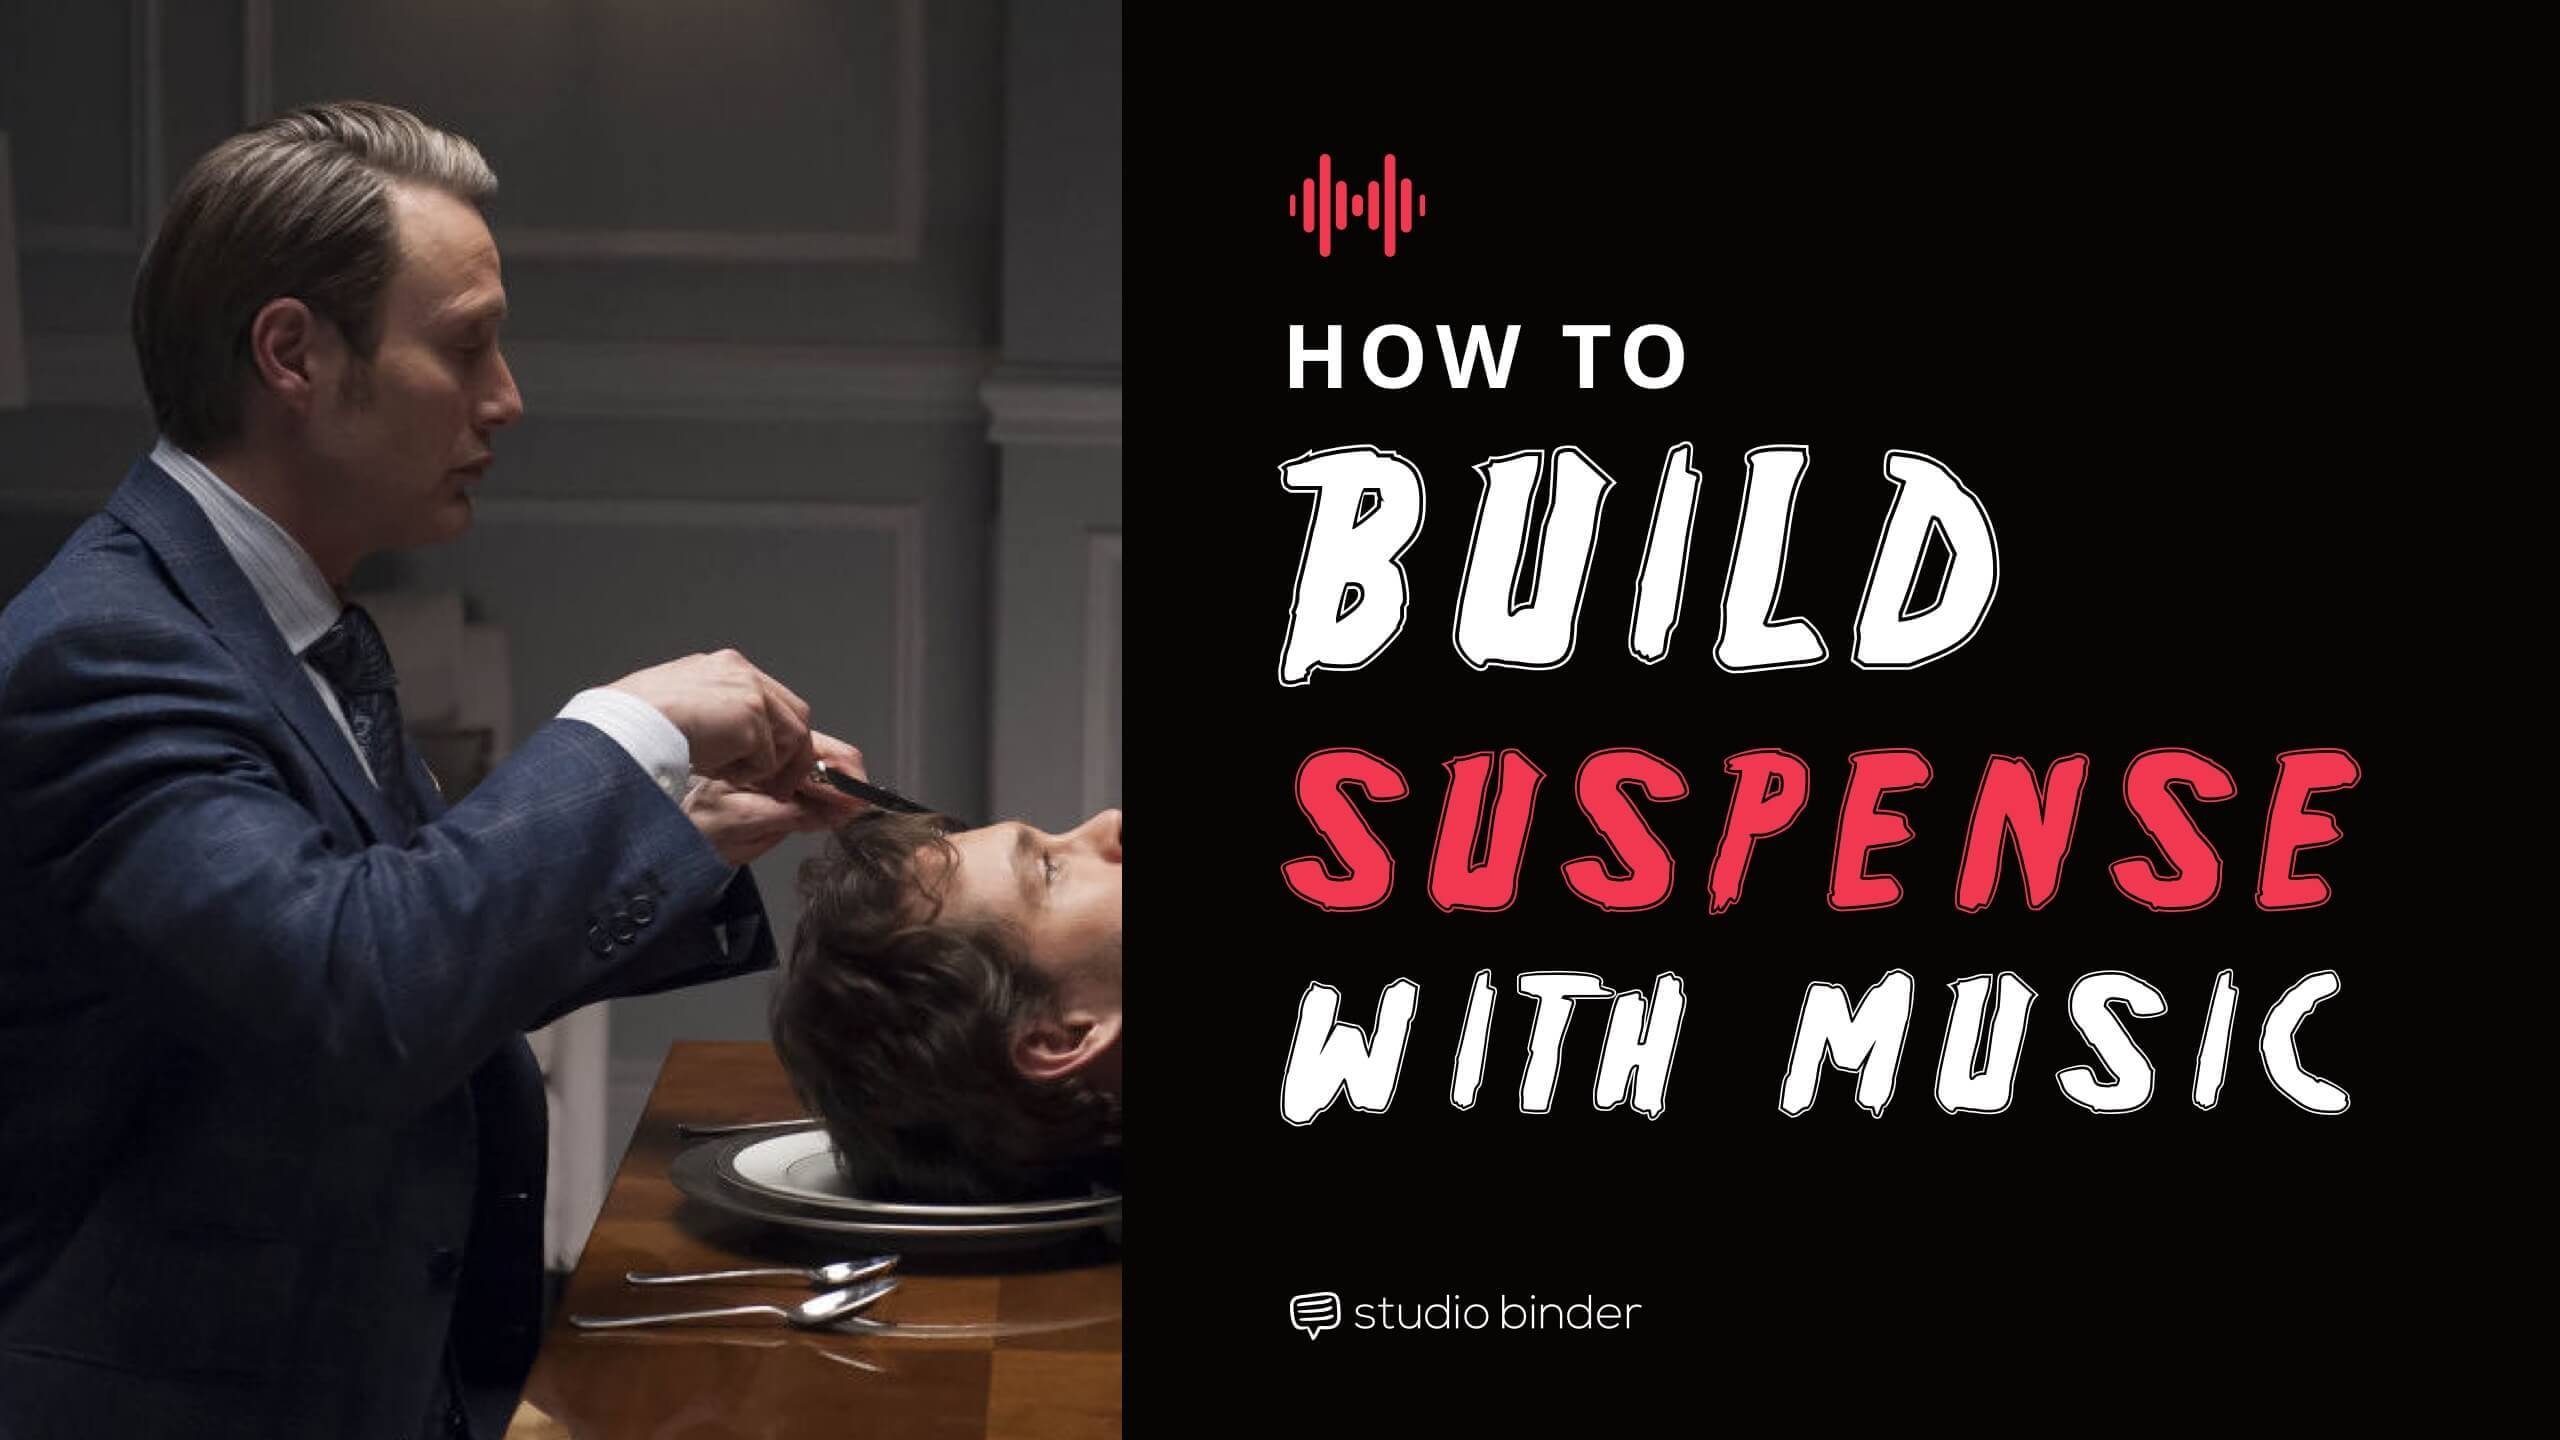 Suspenseful music can make the most innocent scene a nightmare. Here's how you can use music to terrifying your audience.